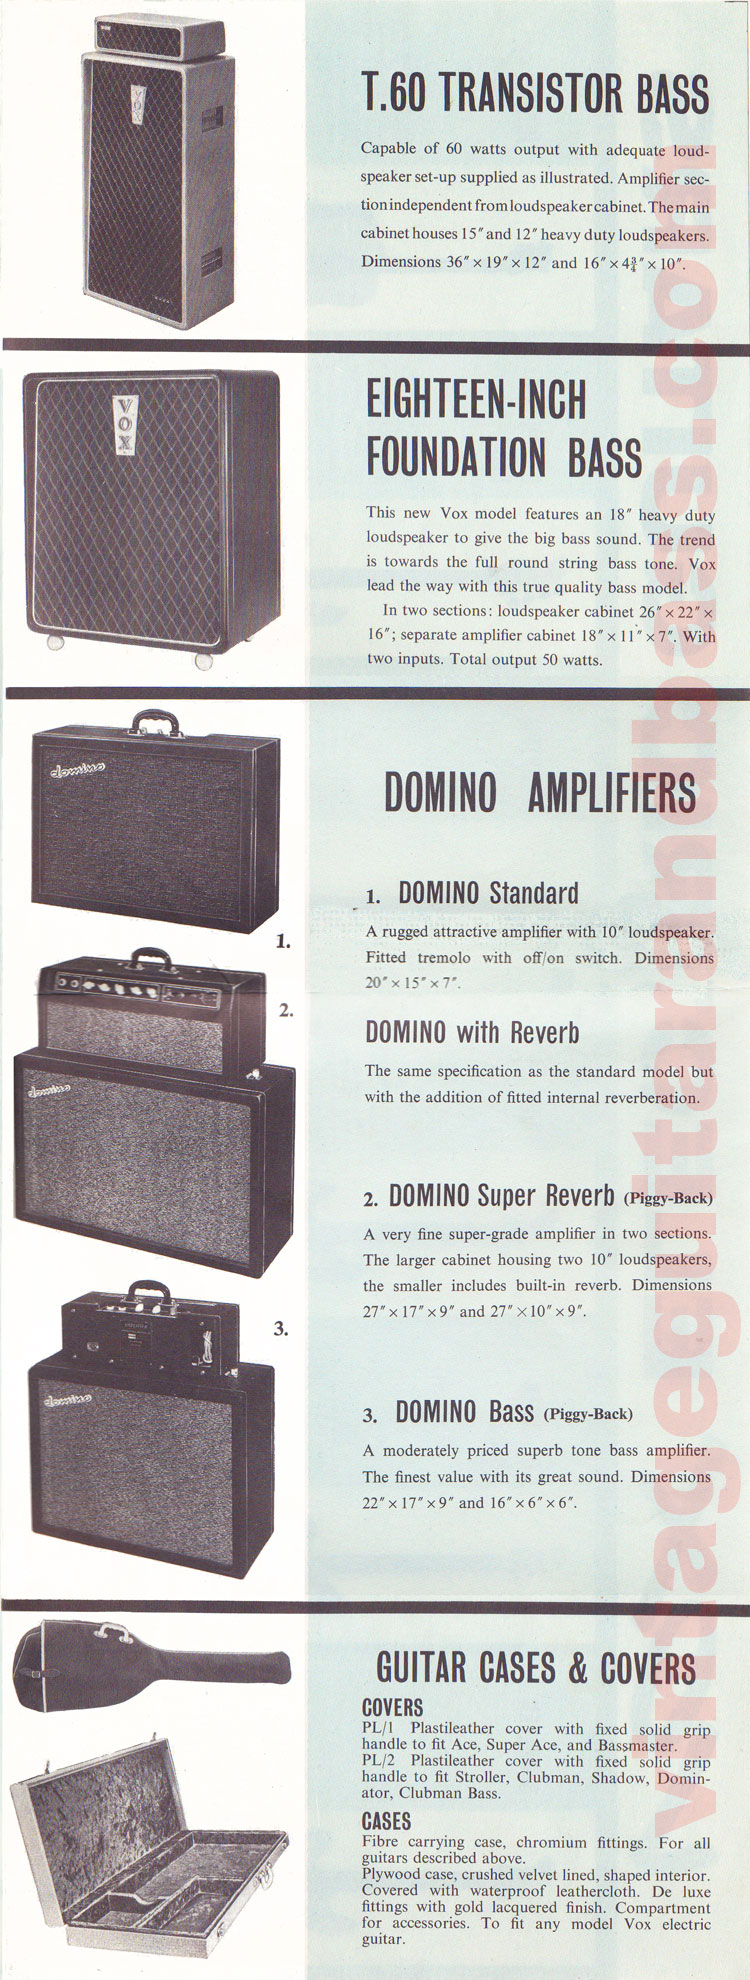 1962 Vox guitar catalog page 8 - details of the T60 transistor amp